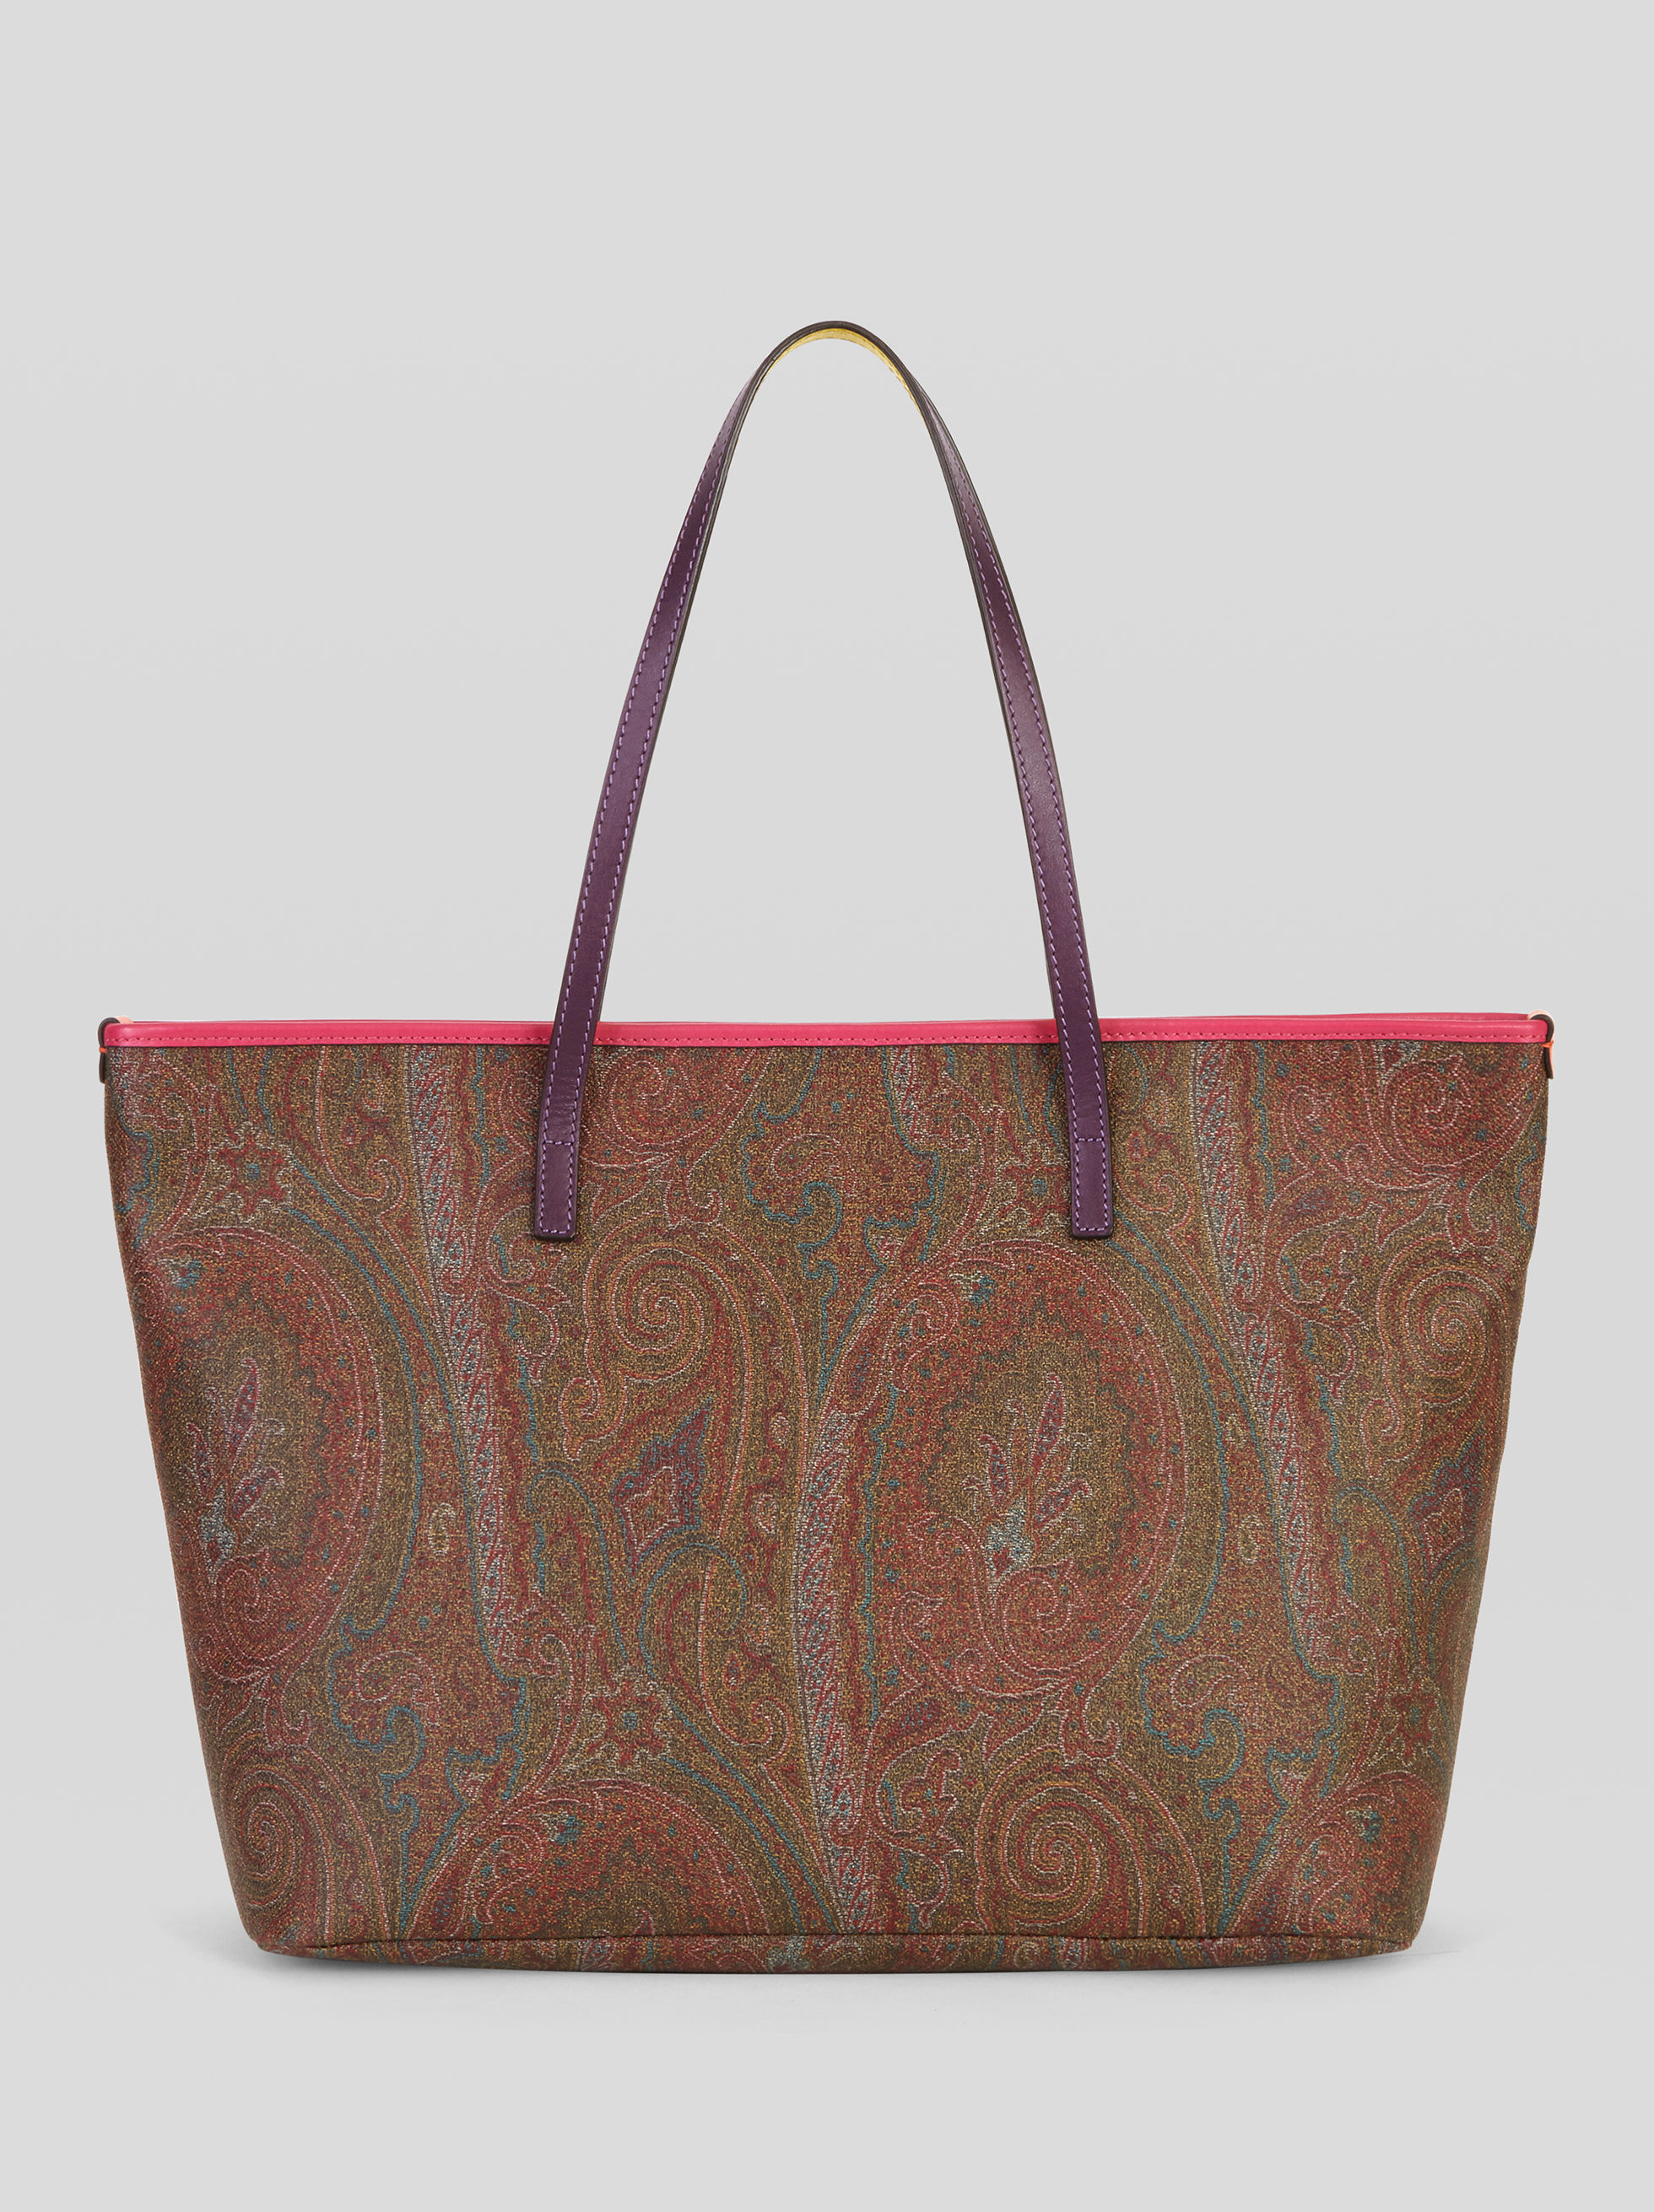 PAISLEY TOTE BAG WITH MULTICOLORED DETAILS